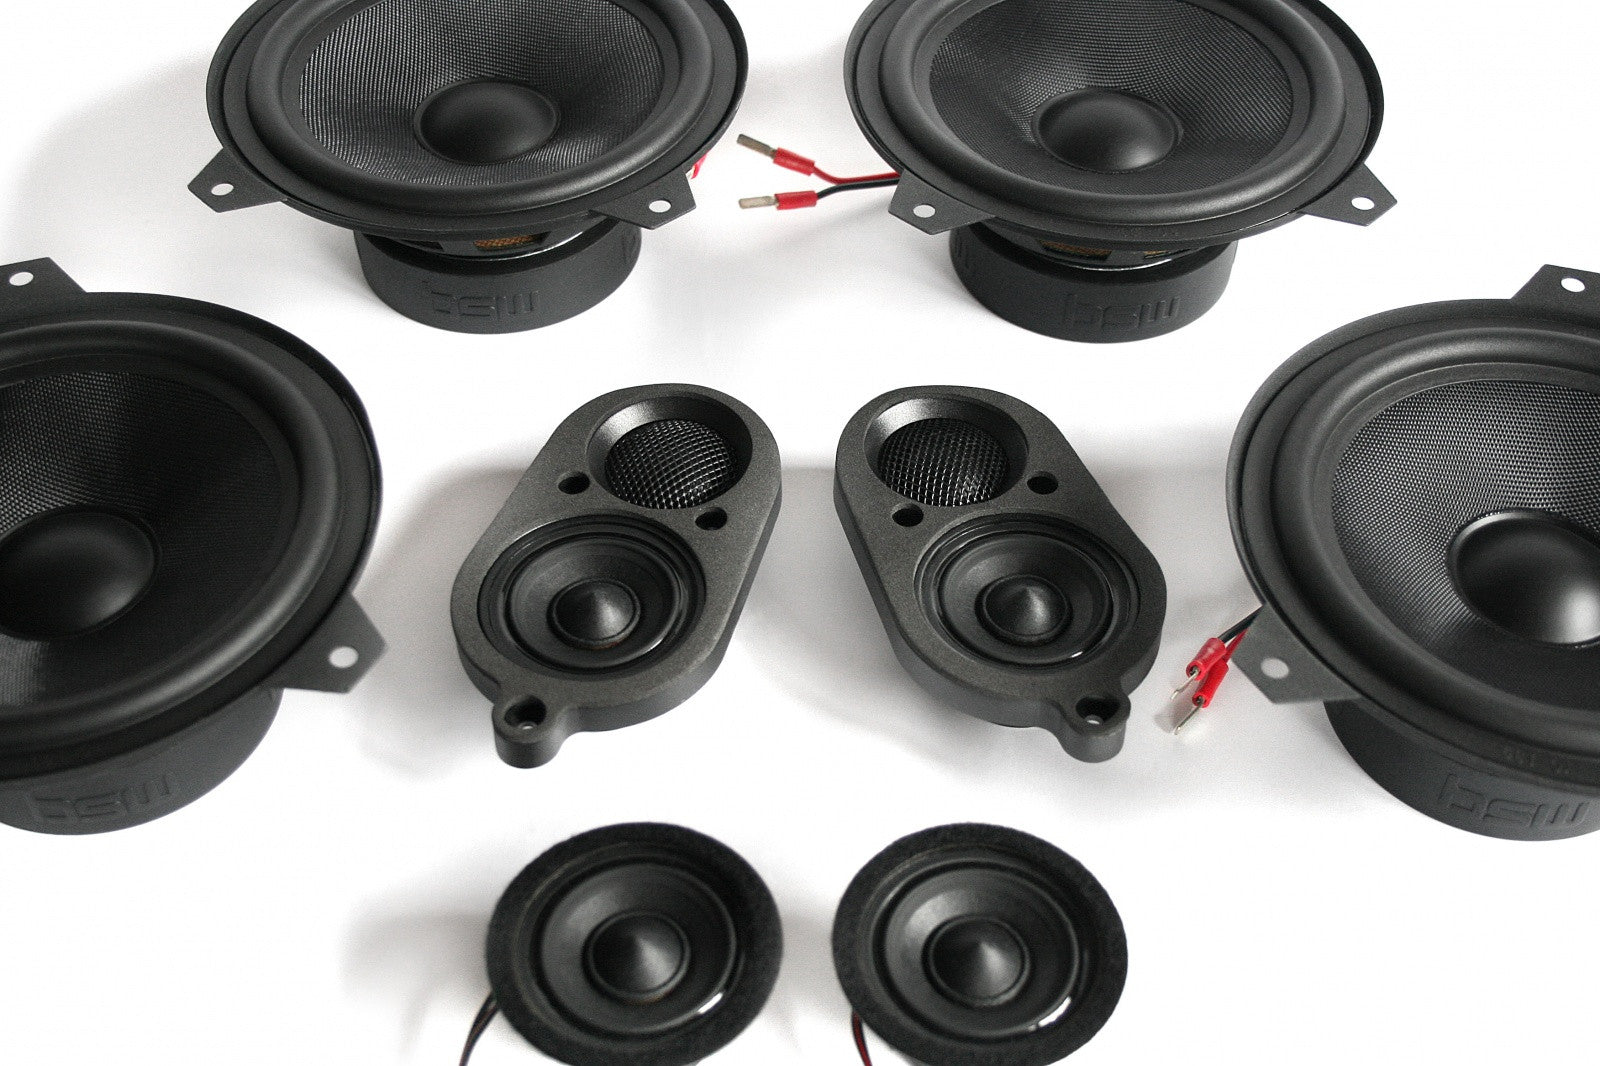 BMW Speaker Upgrade for E46 Coupe with Harman Kardon